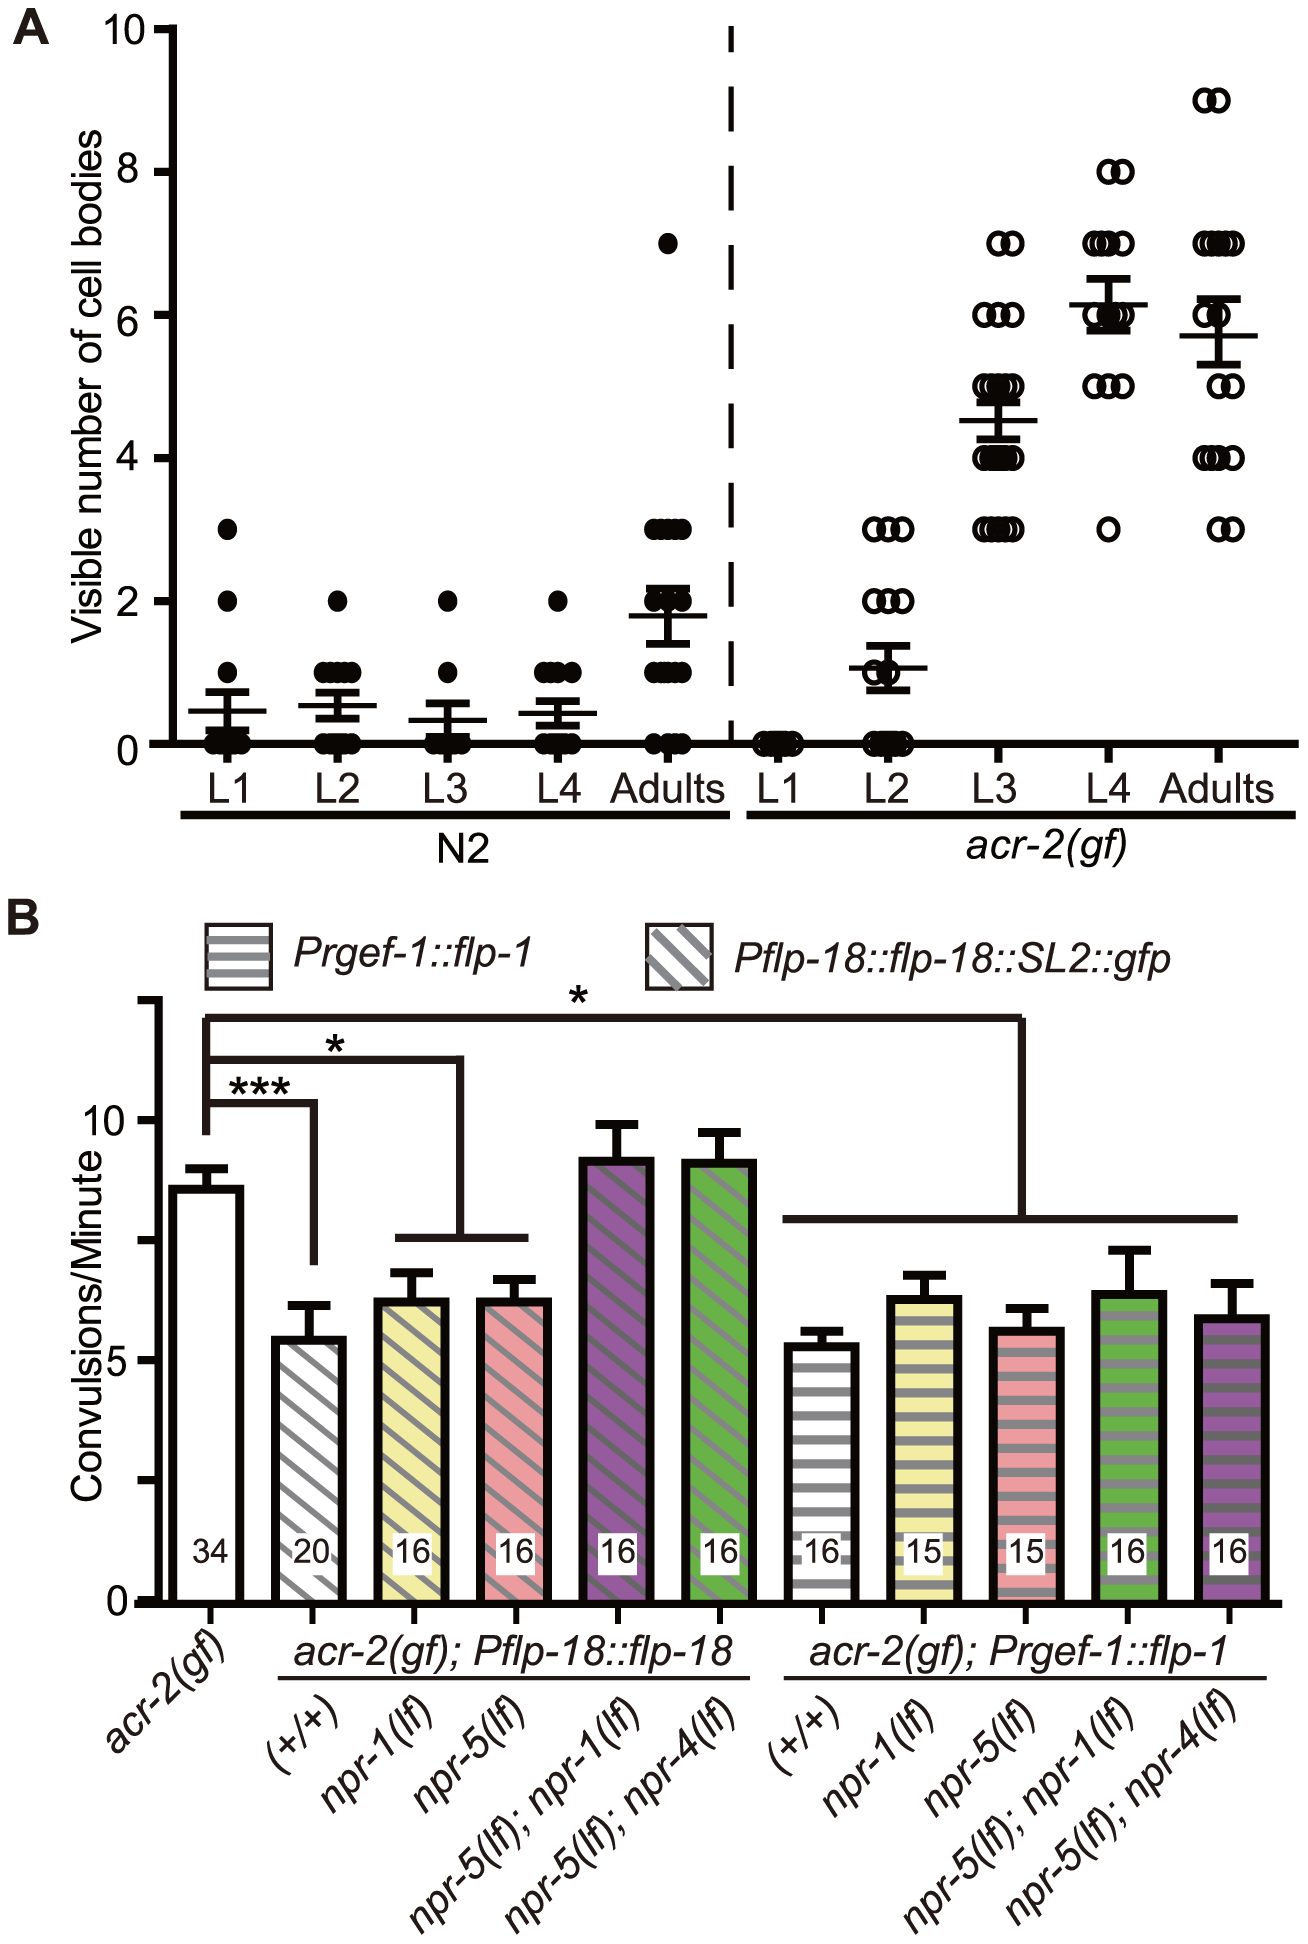 Induced expression of FLP-18 in <i>acr-2(gf)</i> correlates with the onset of convulsions, and high levels of FLP-18 or FLP-1 suppress convulsions.